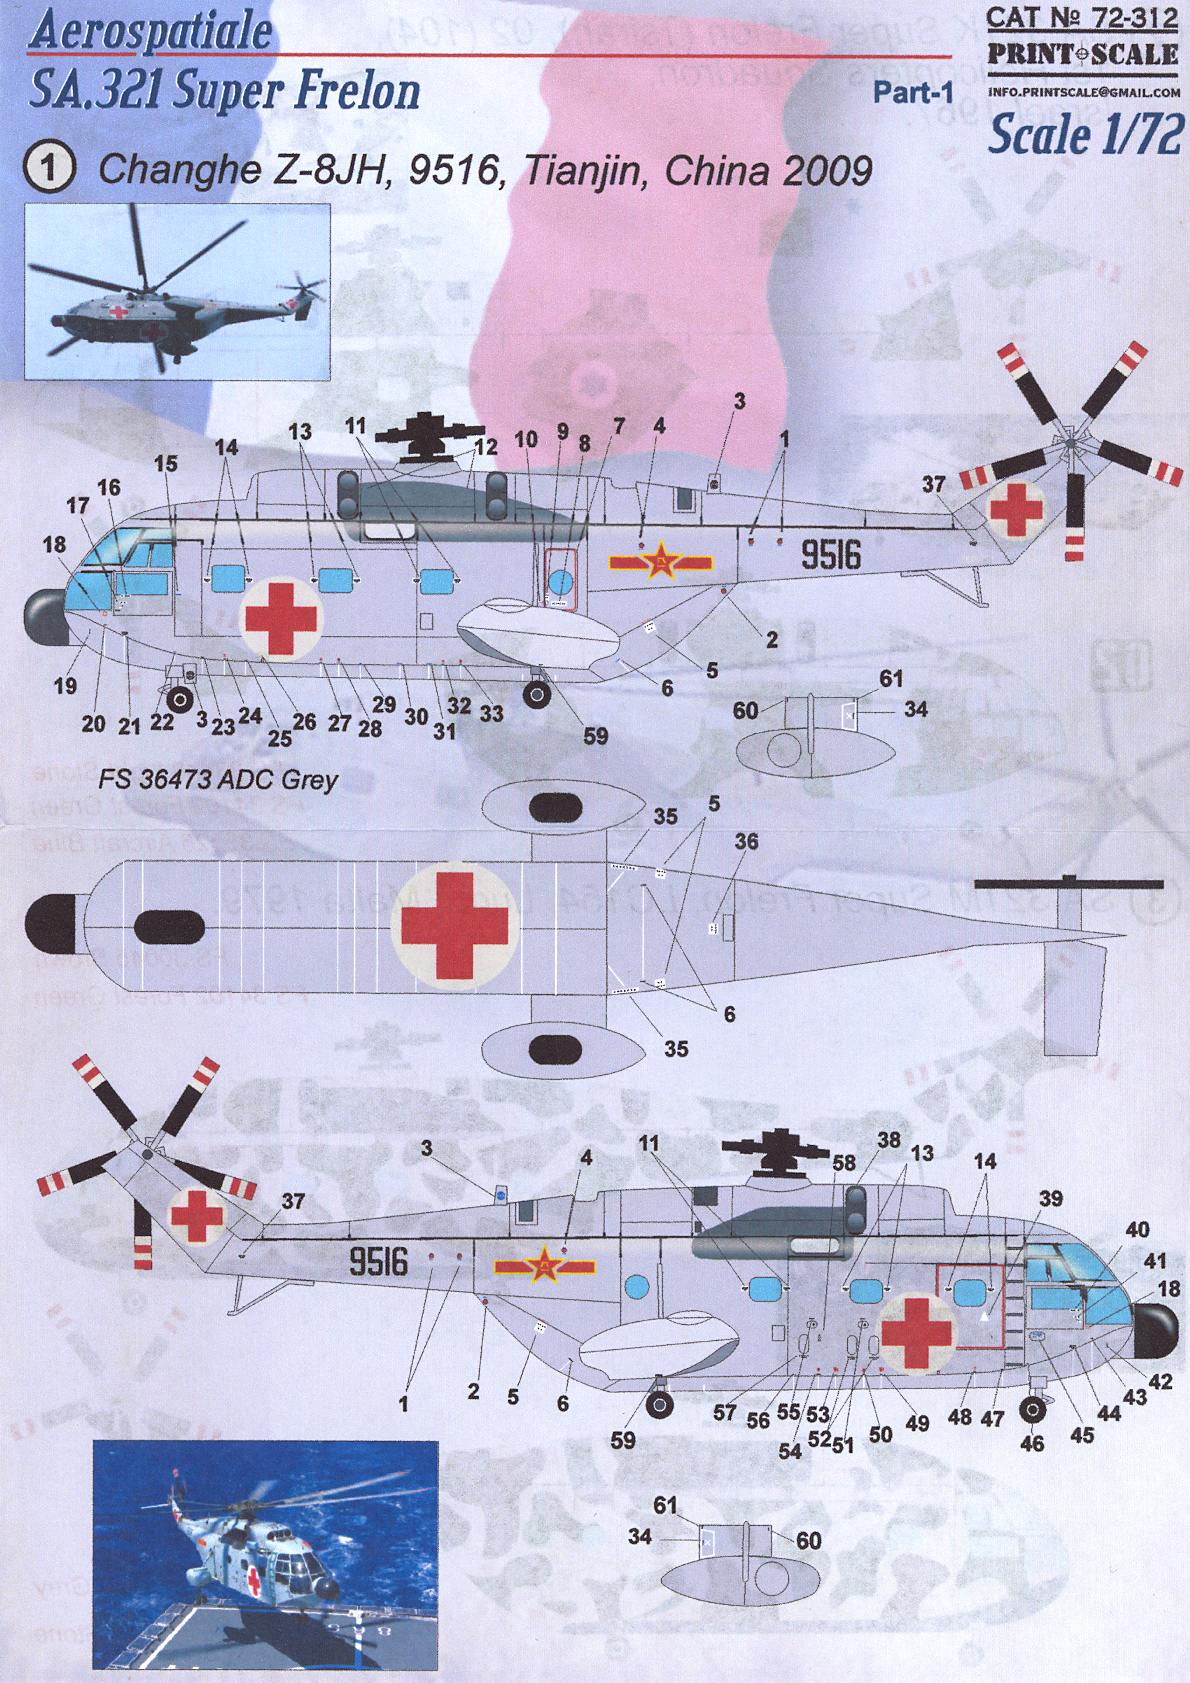 hight resolution of details about print scale decals 1 72 aerospatiale sa 321 super frelon helicopter part 1